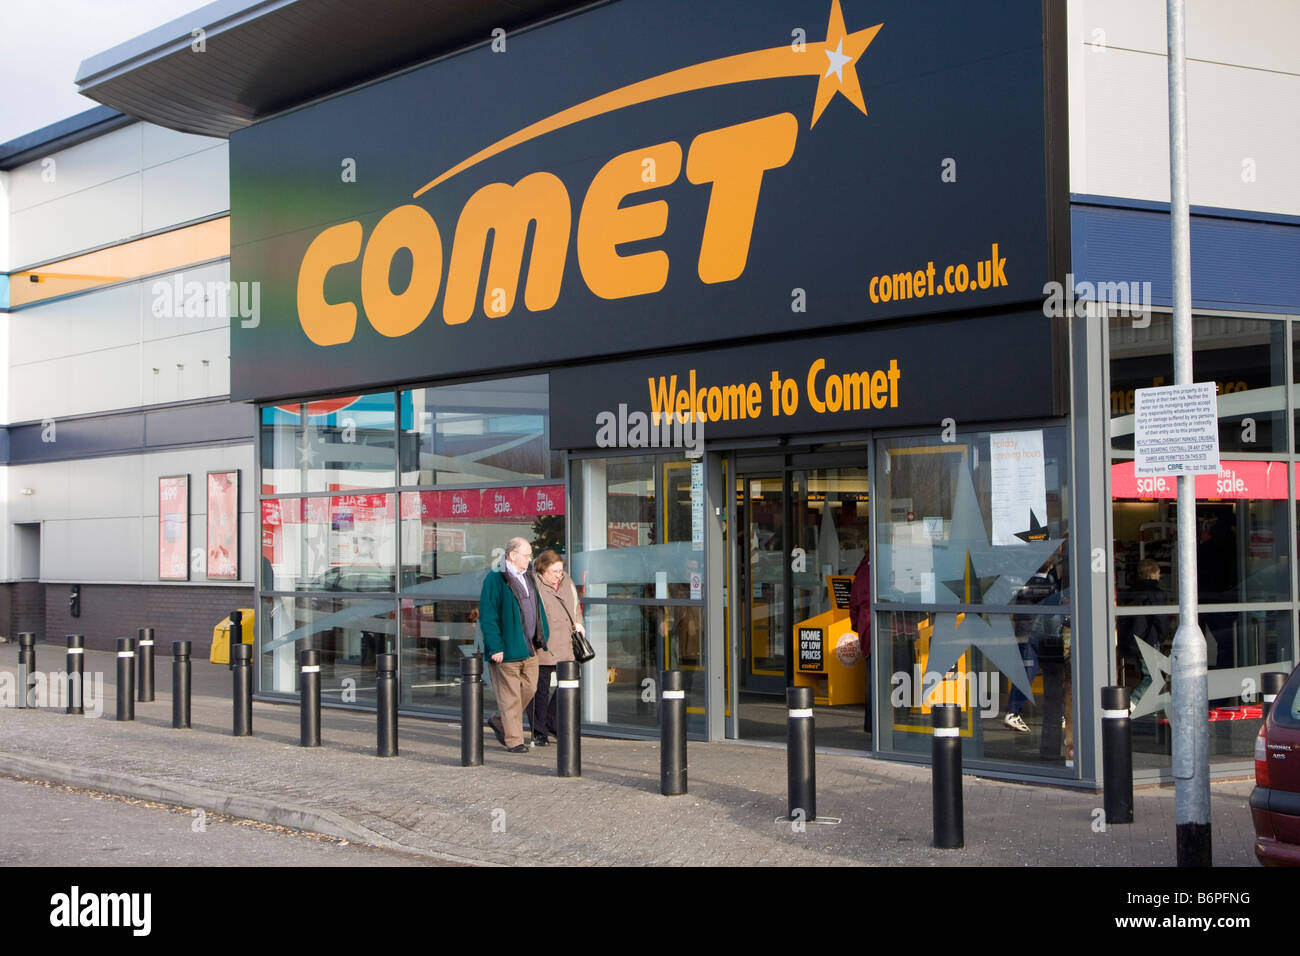 Comet is an electrical retailer in the United Kingdom, which is owned by KESA Electricals plc after the demerger - Stock Image